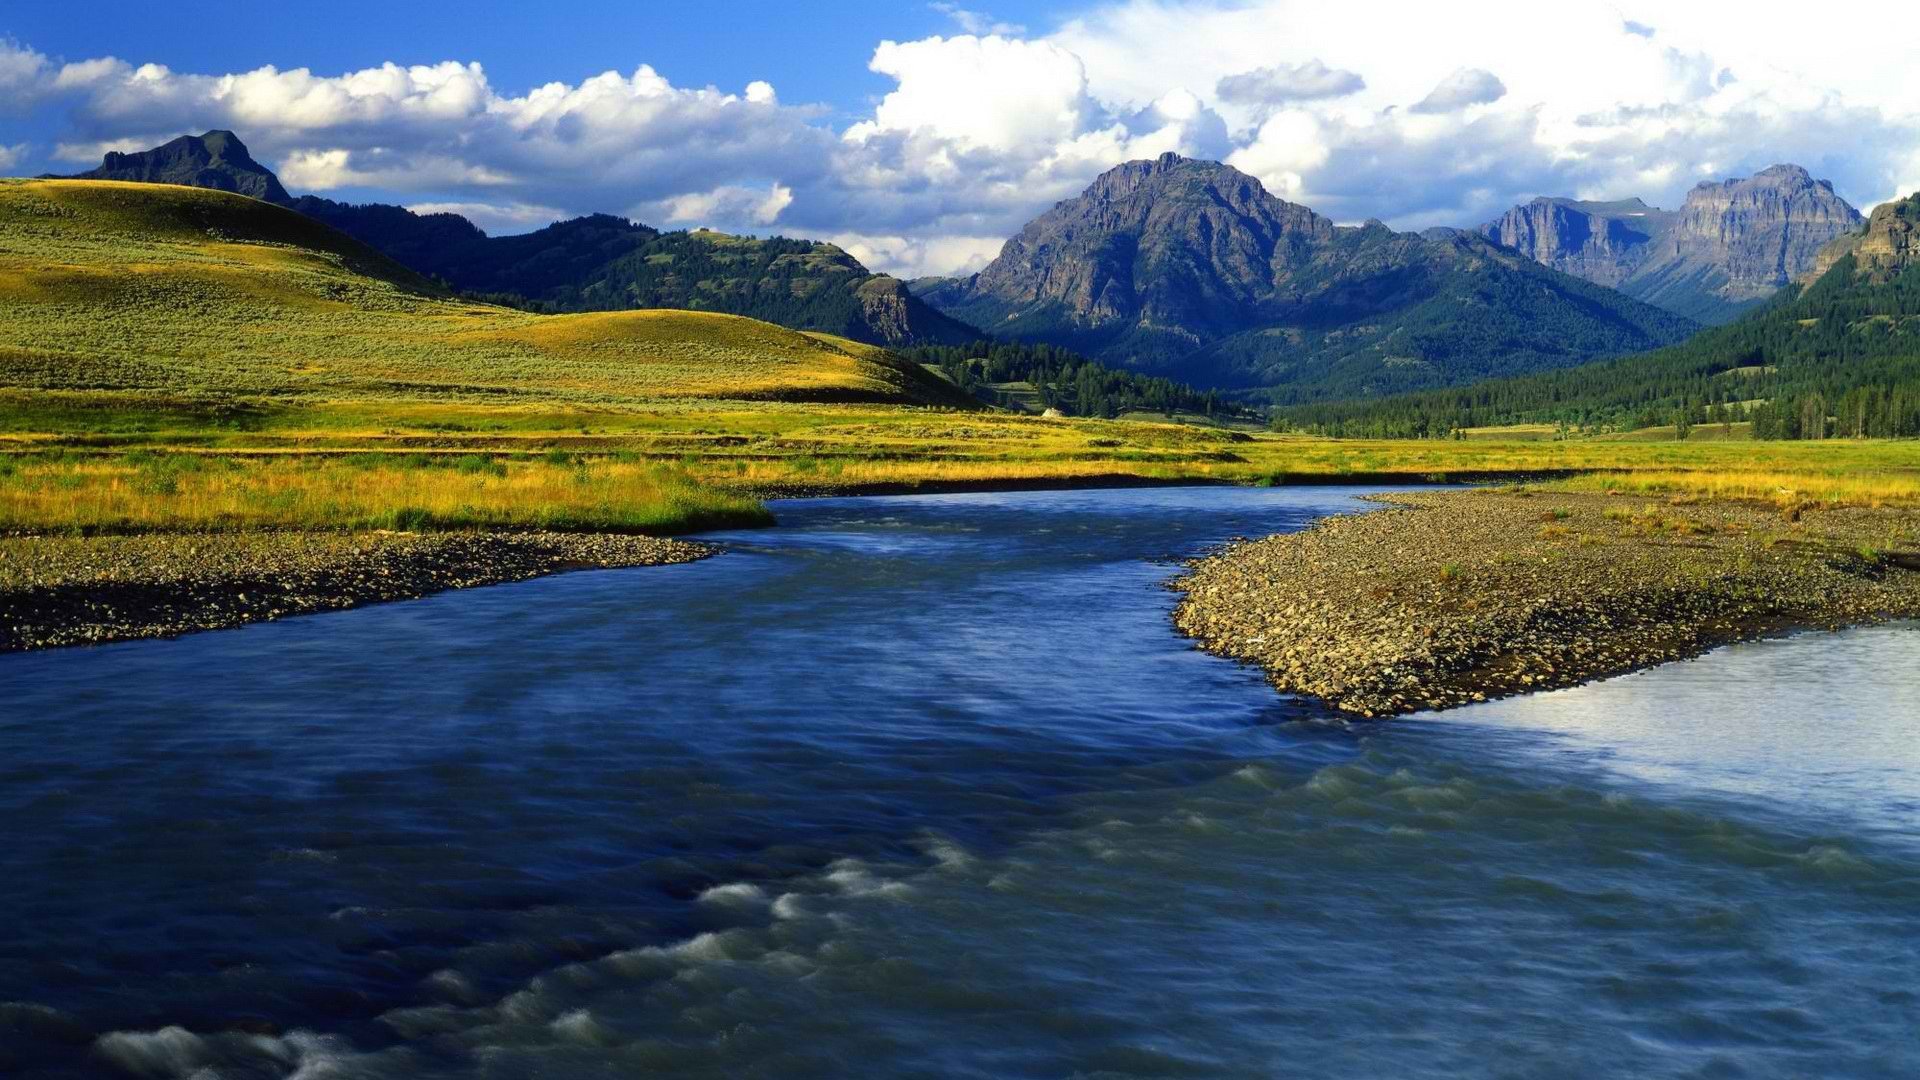 yellowstone national park wallpapers images photos